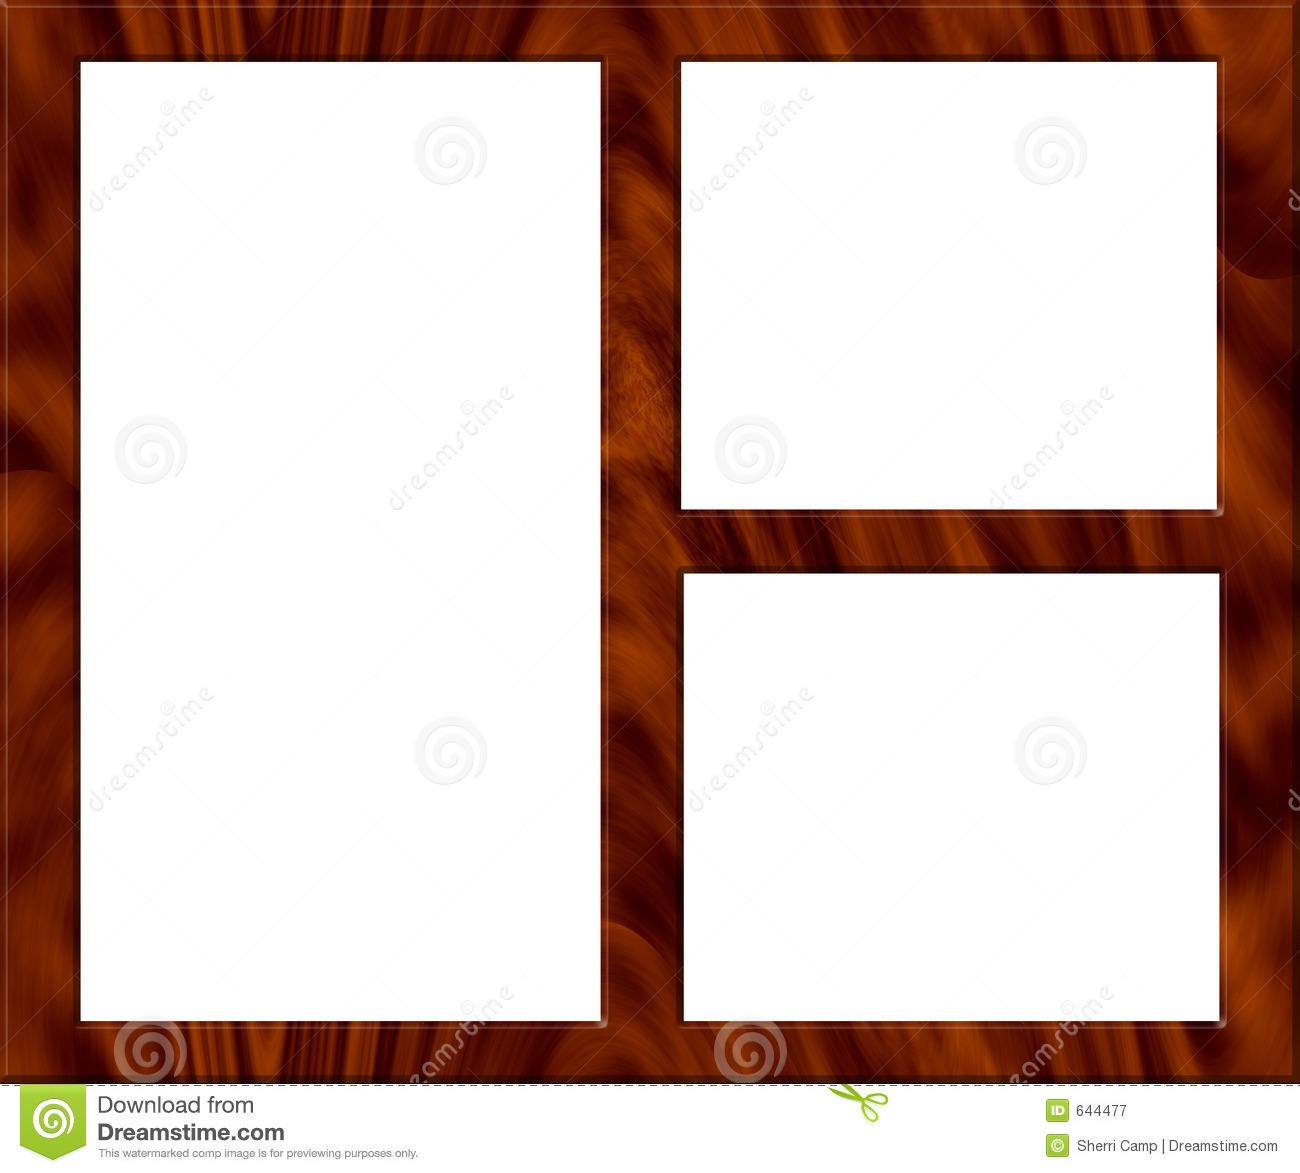 Wooden picture frame empty royalty free stock - Marcos de fotos multiples ...